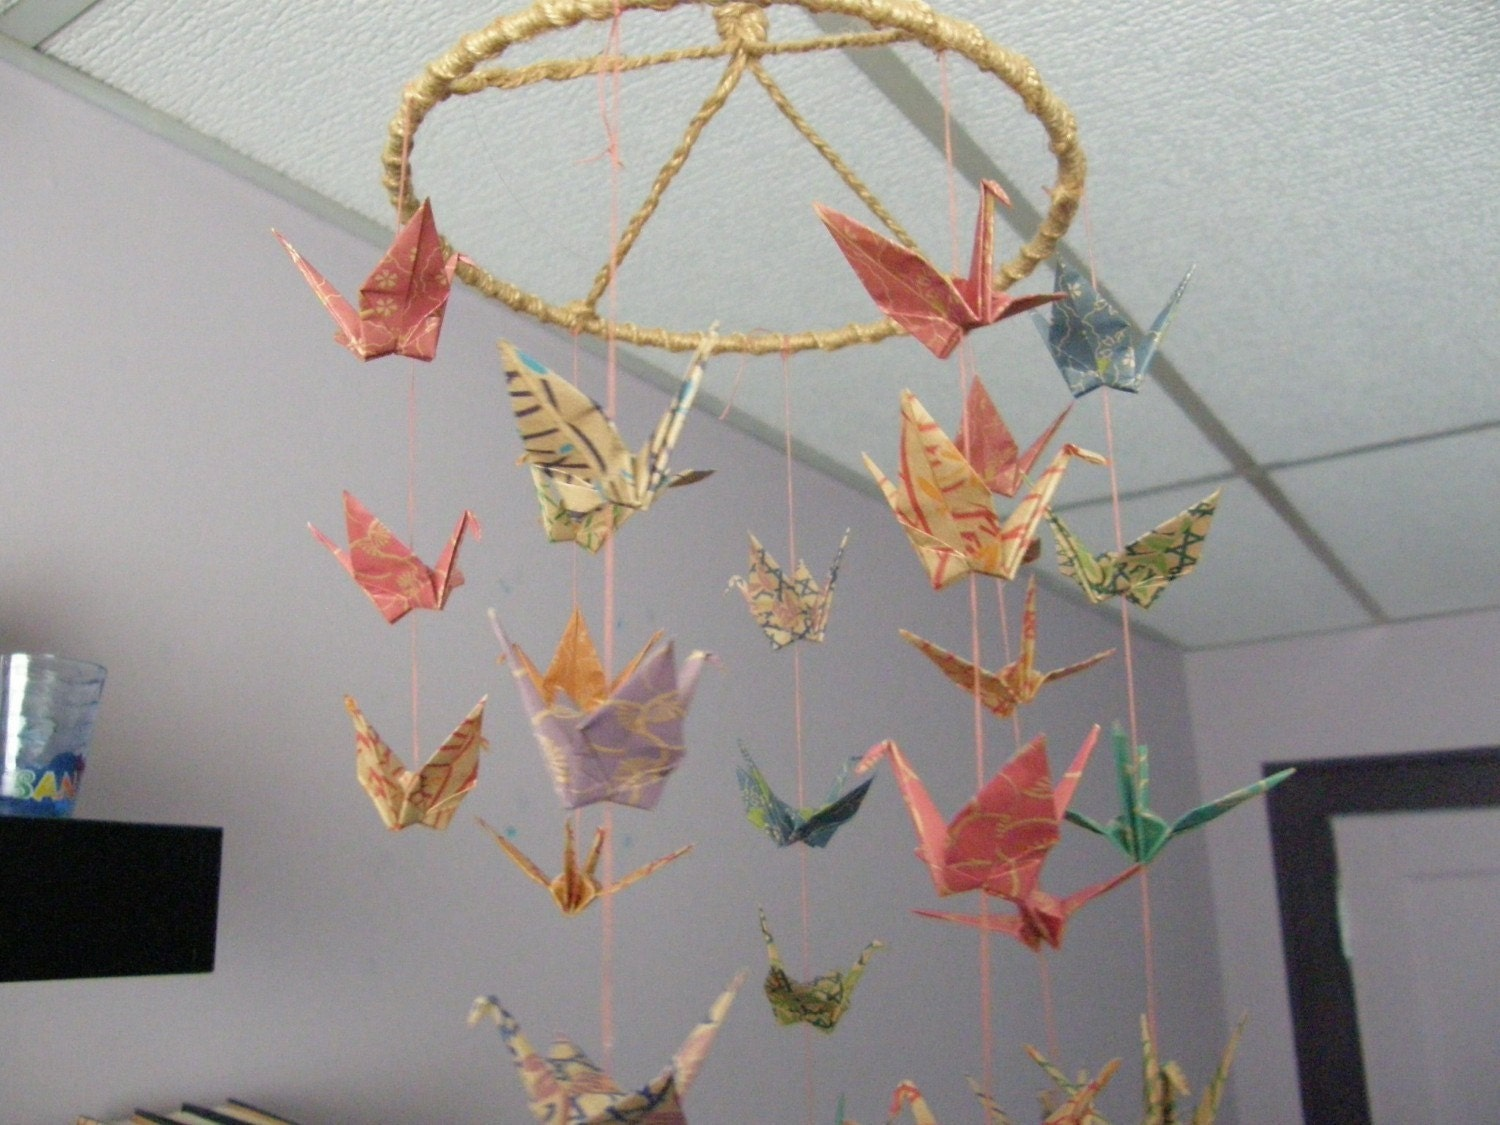 ORIGAMI CRANE PATTERNS « EMBROIDERY & ORIGAMI - photo#31